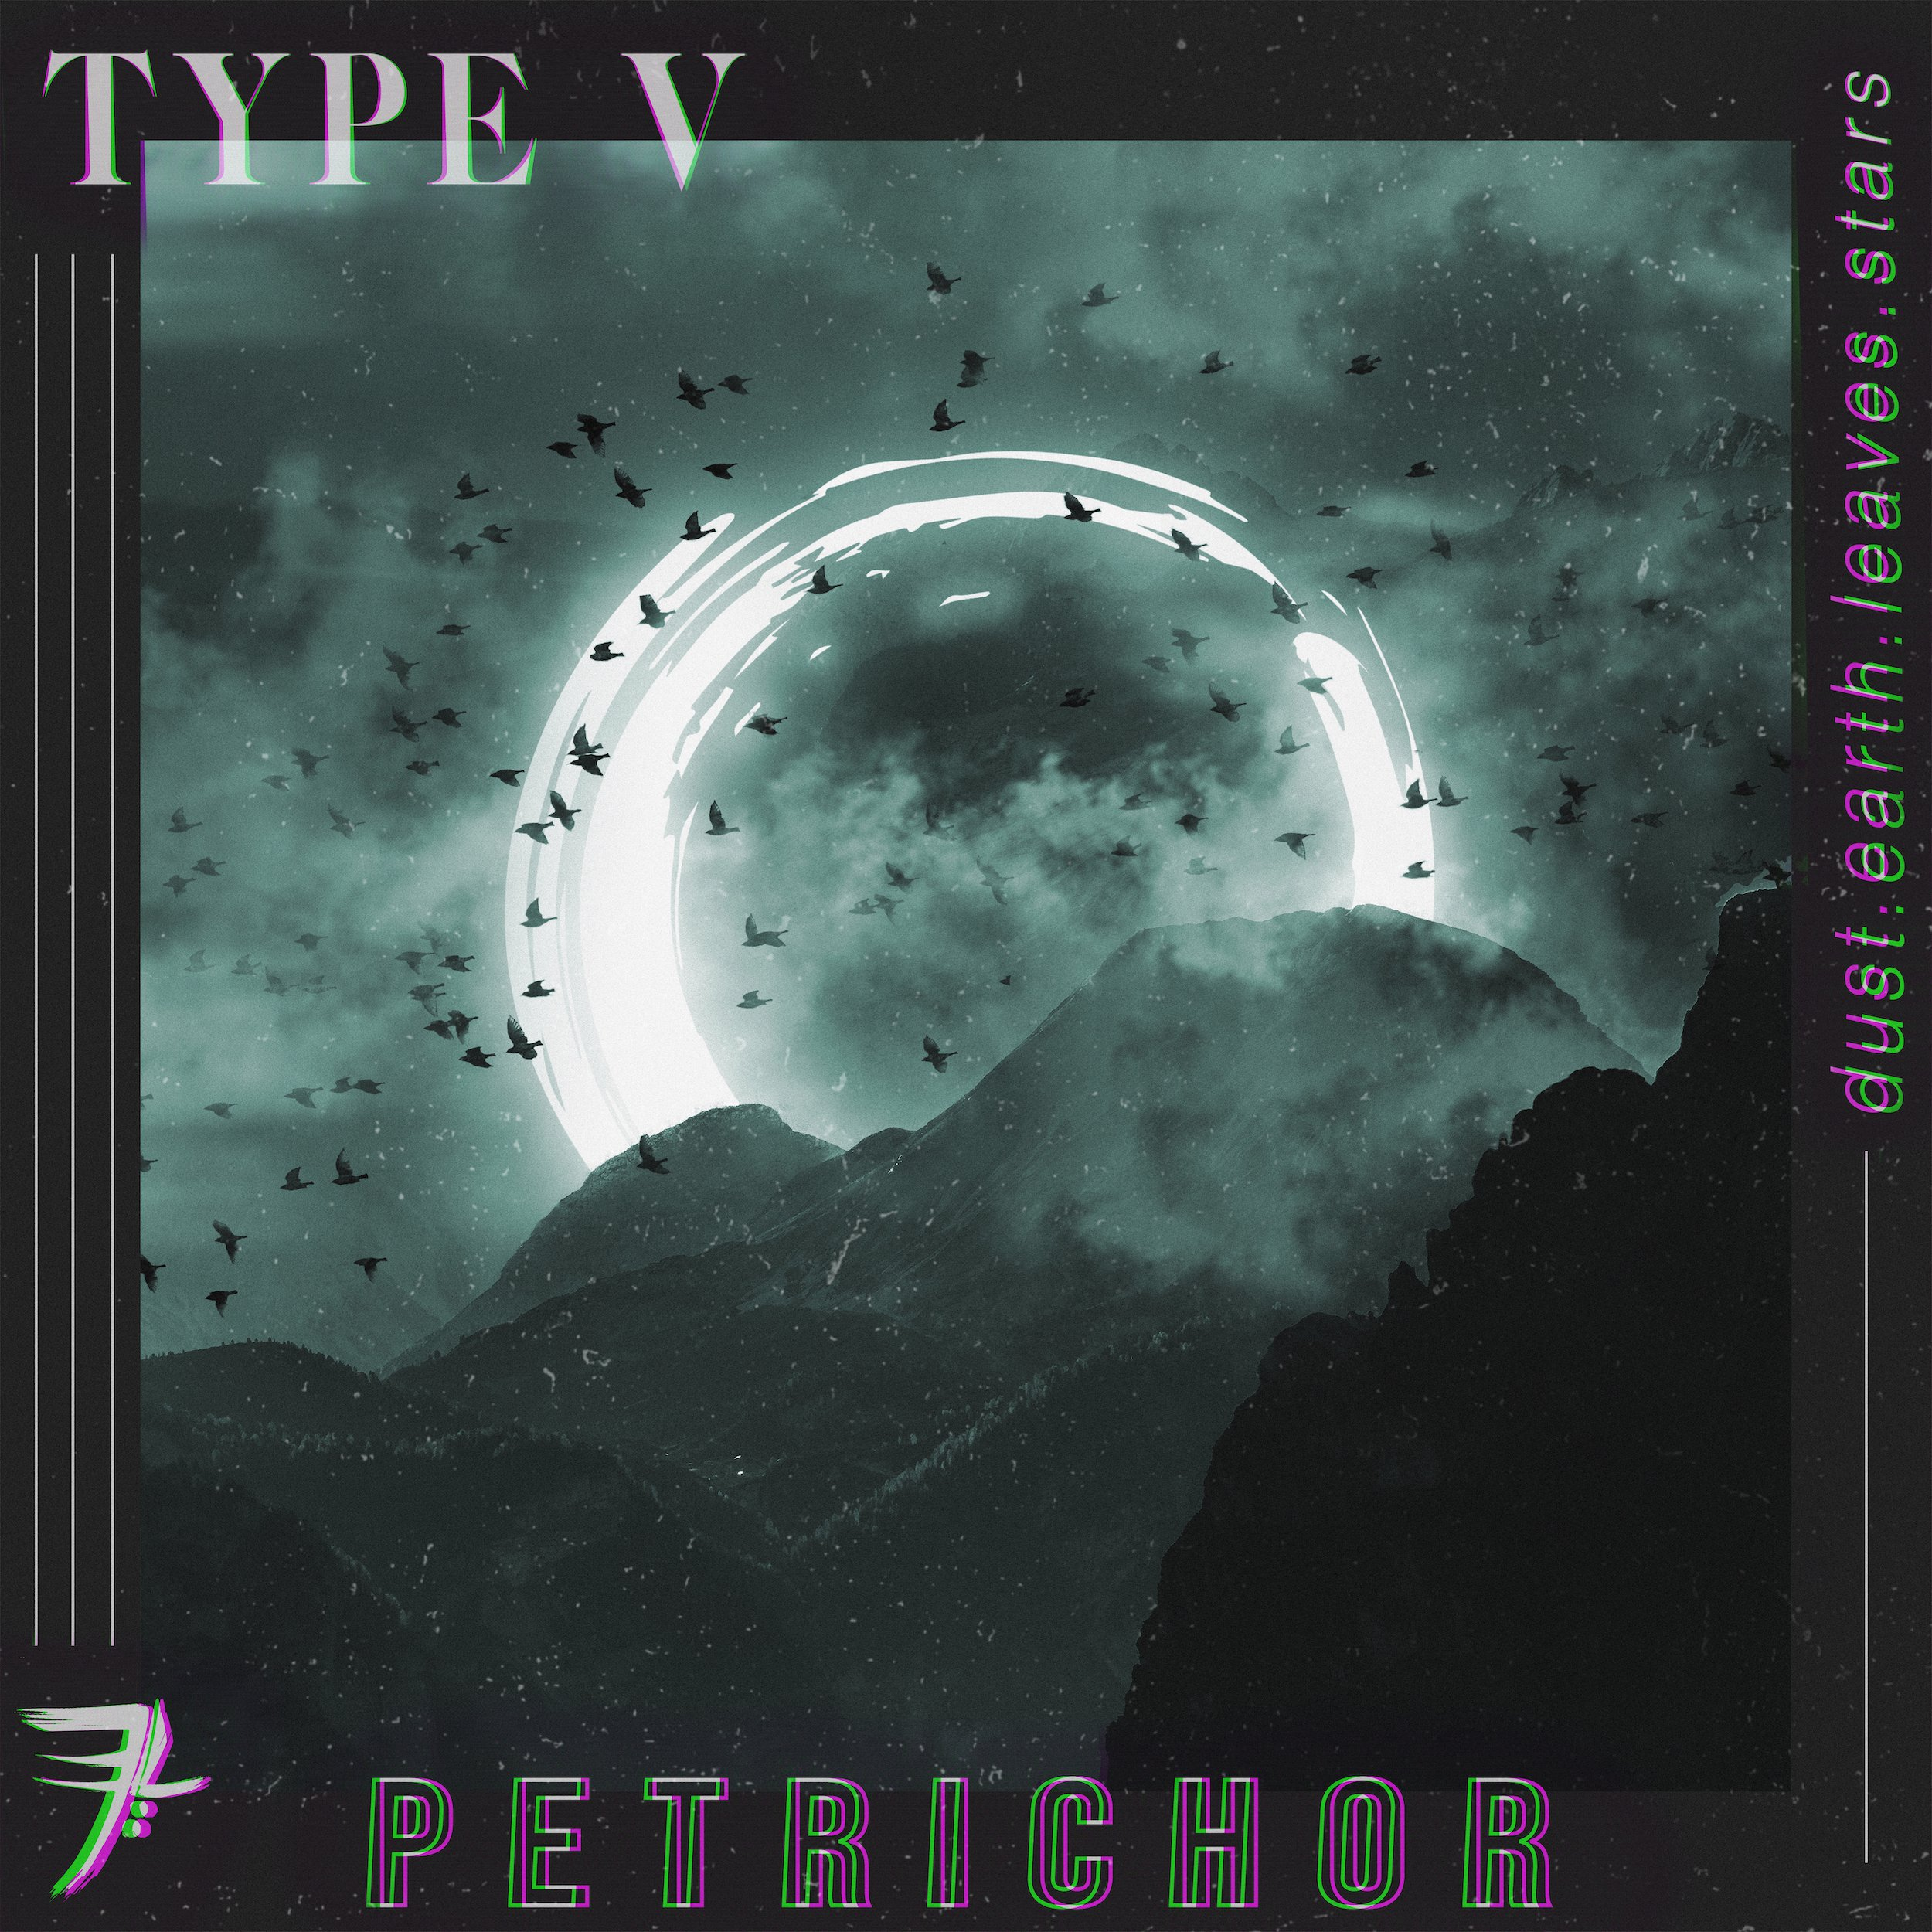 type v fall fly daeva petrichor couvre x chefs